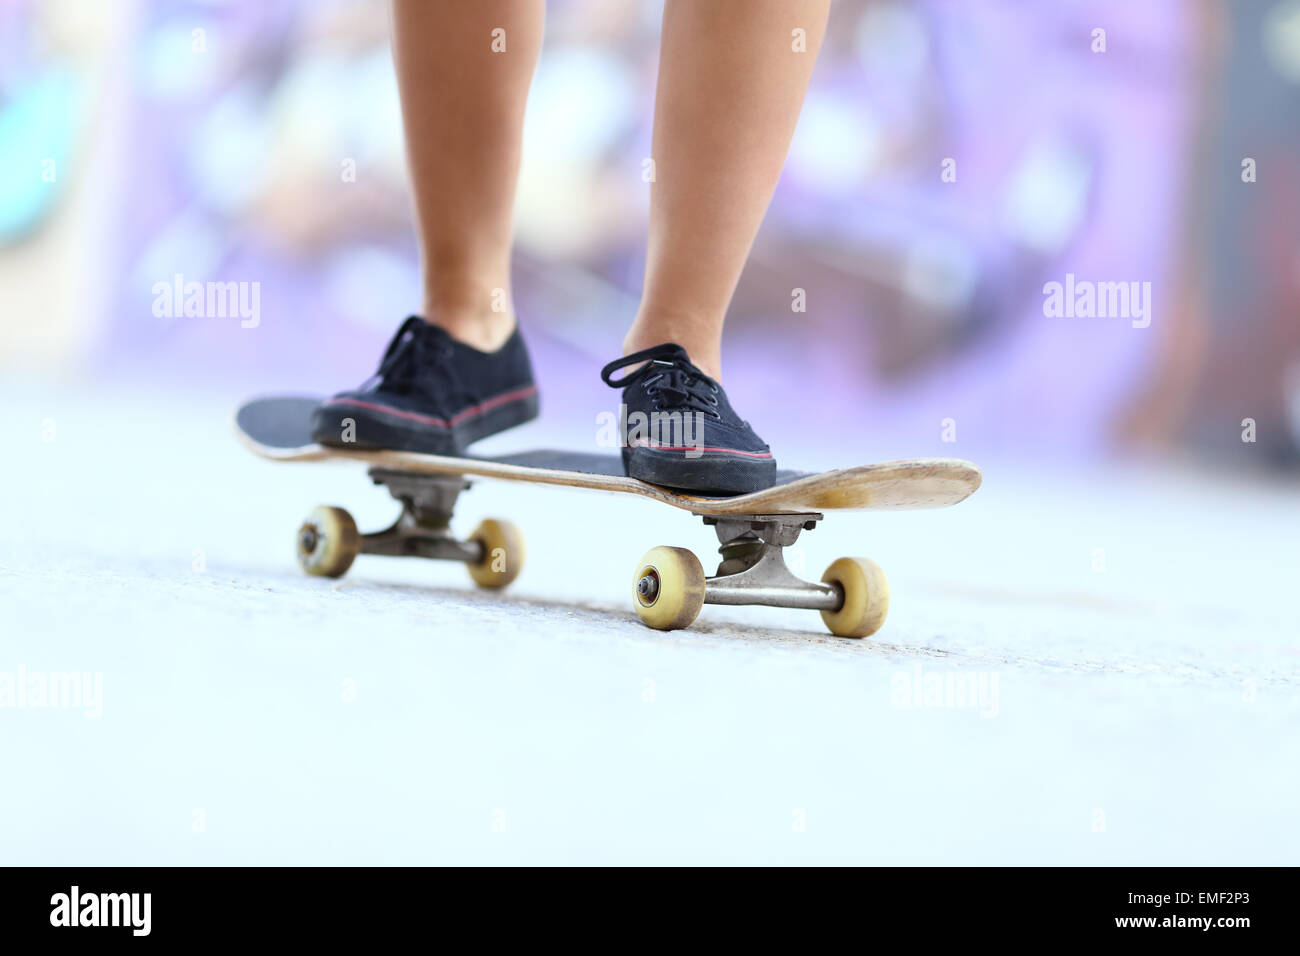 Teenager skater girl legs on a skate board with a graffiti wall in the background - Stock Image